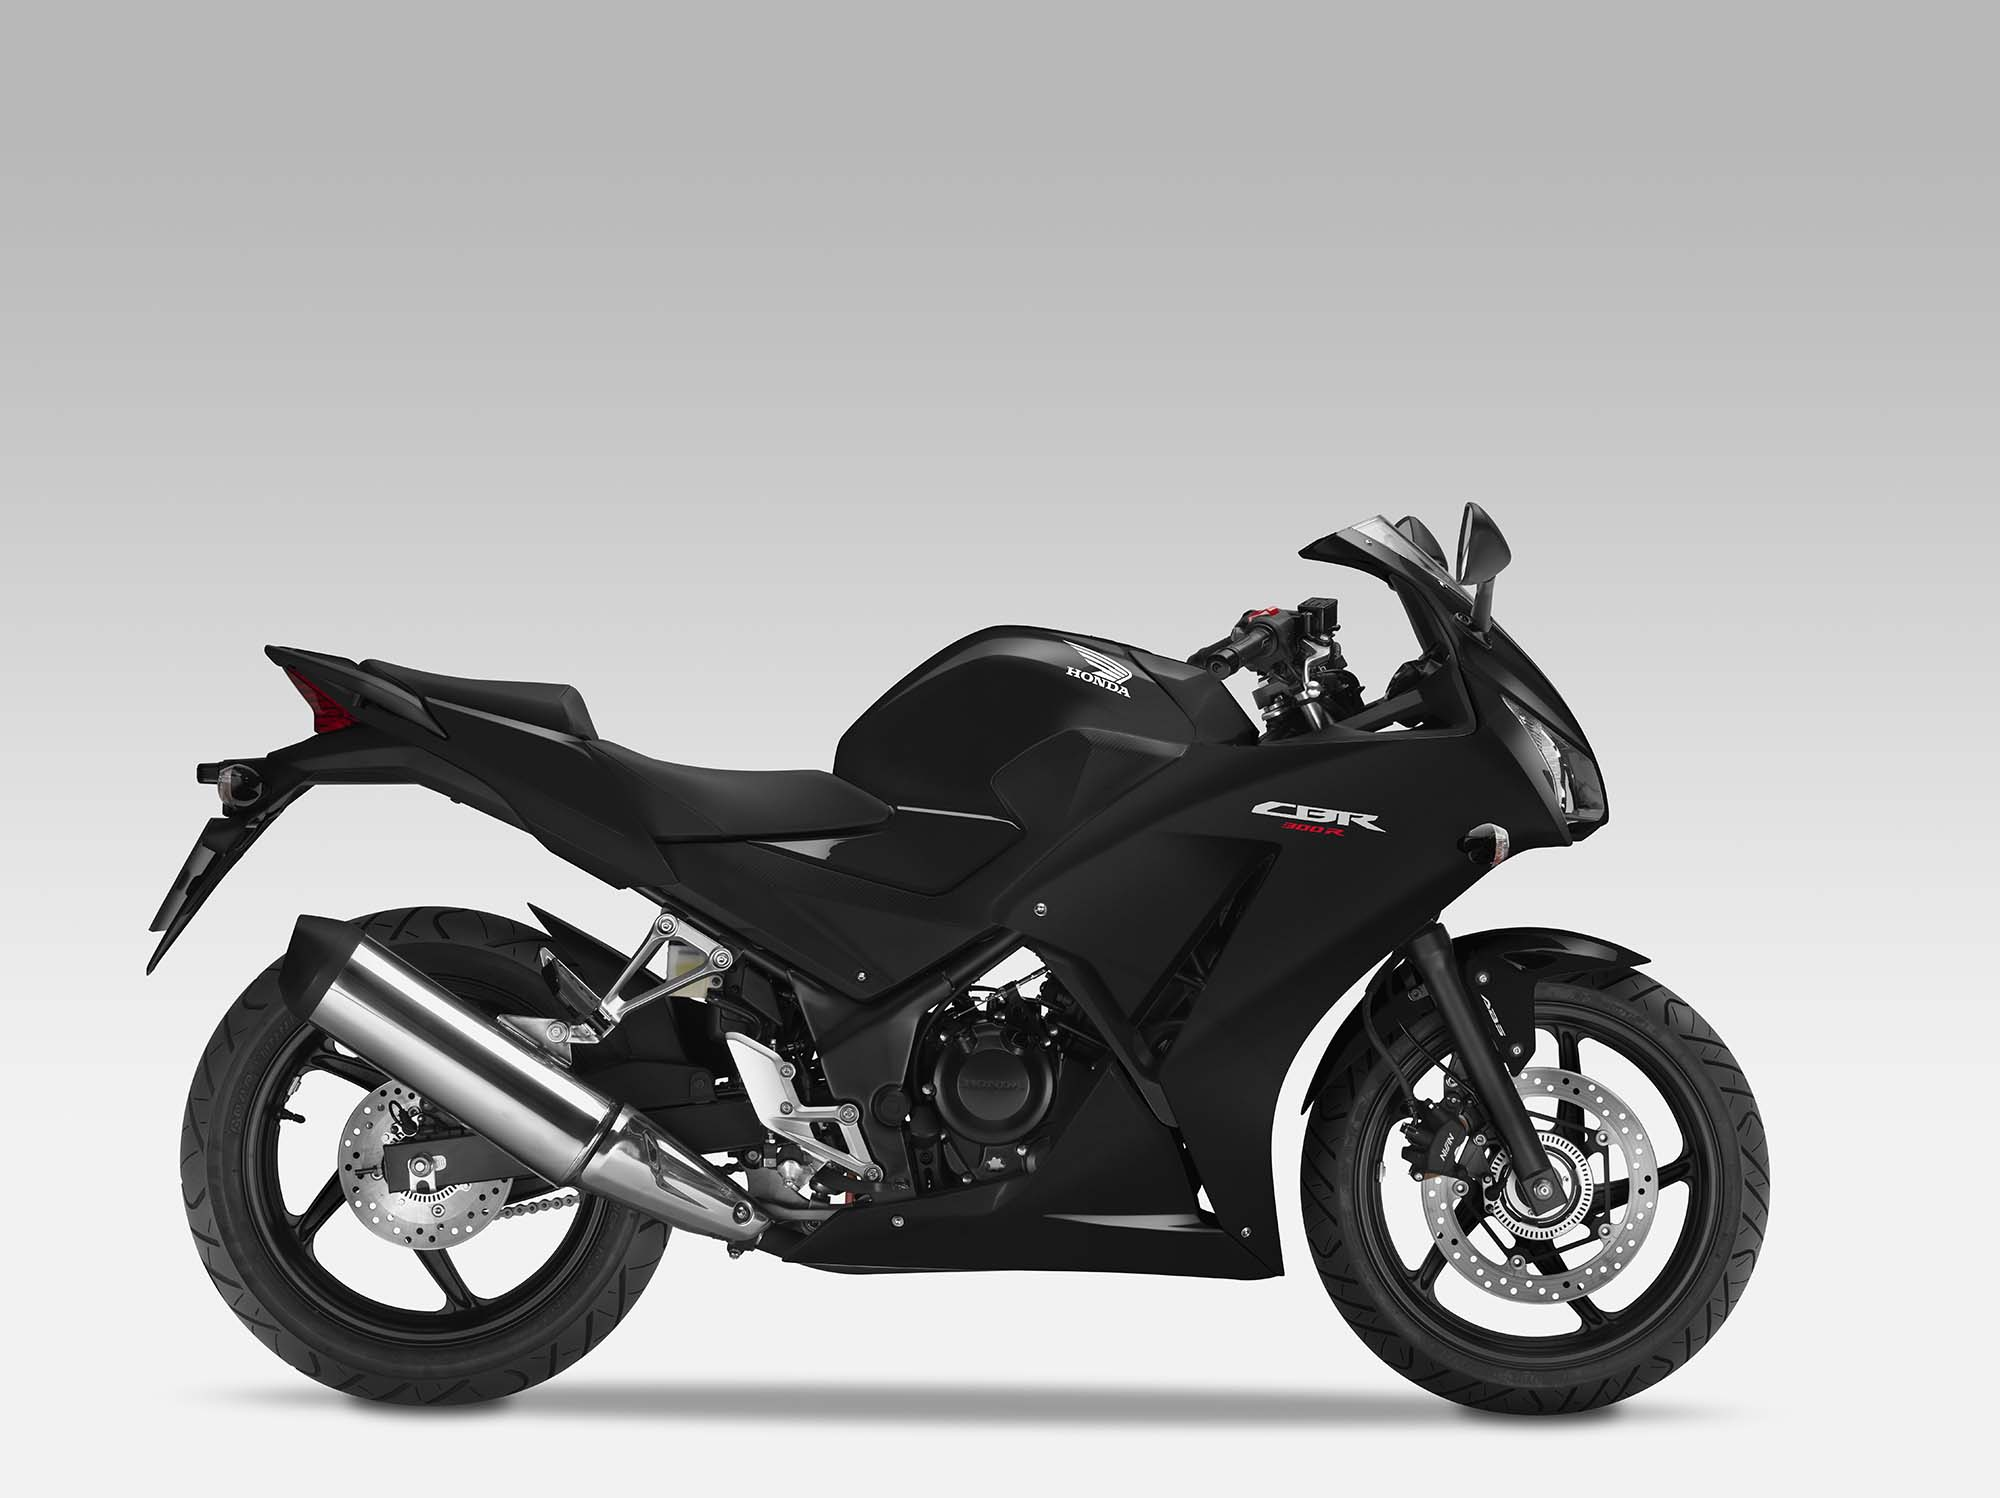 2014 Honda Cbr300r Replaces The Cbr250r Autoevolution